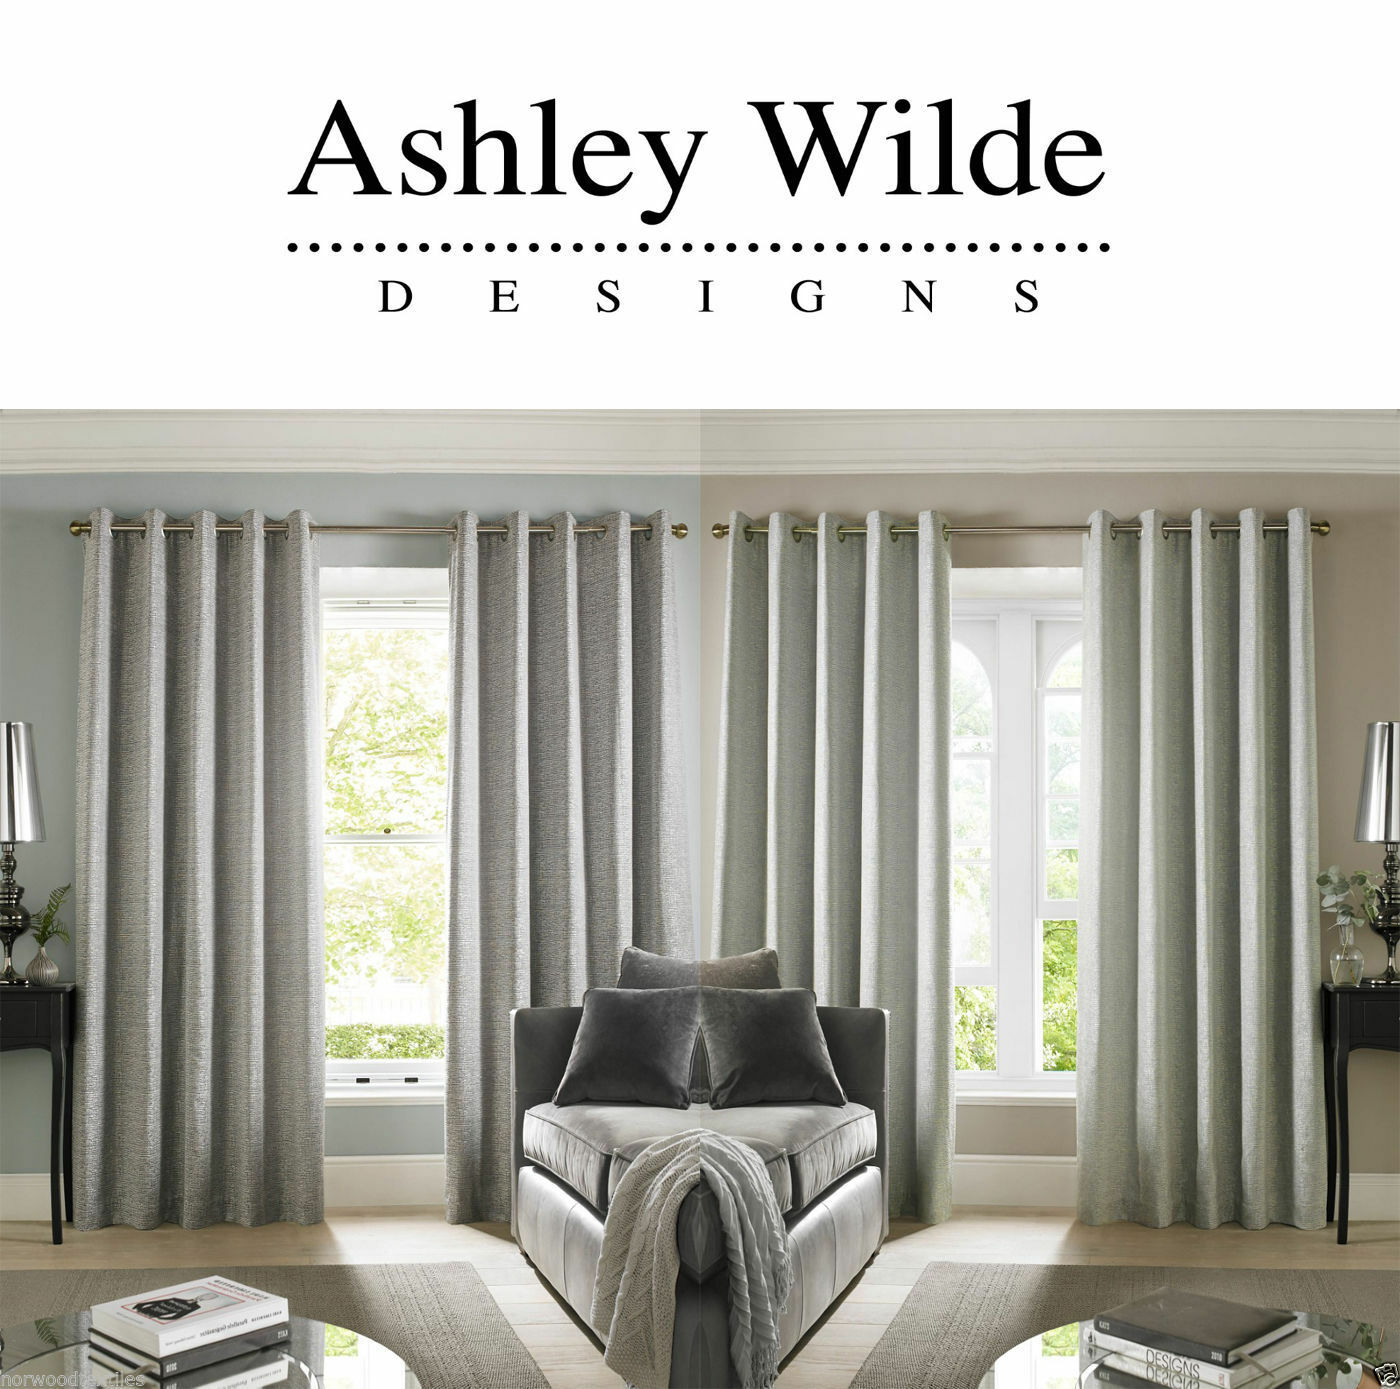 Ashley Wilde Cairo Chenille Fully Lined Ready Made Eyelet Ring Top Curtains Pair